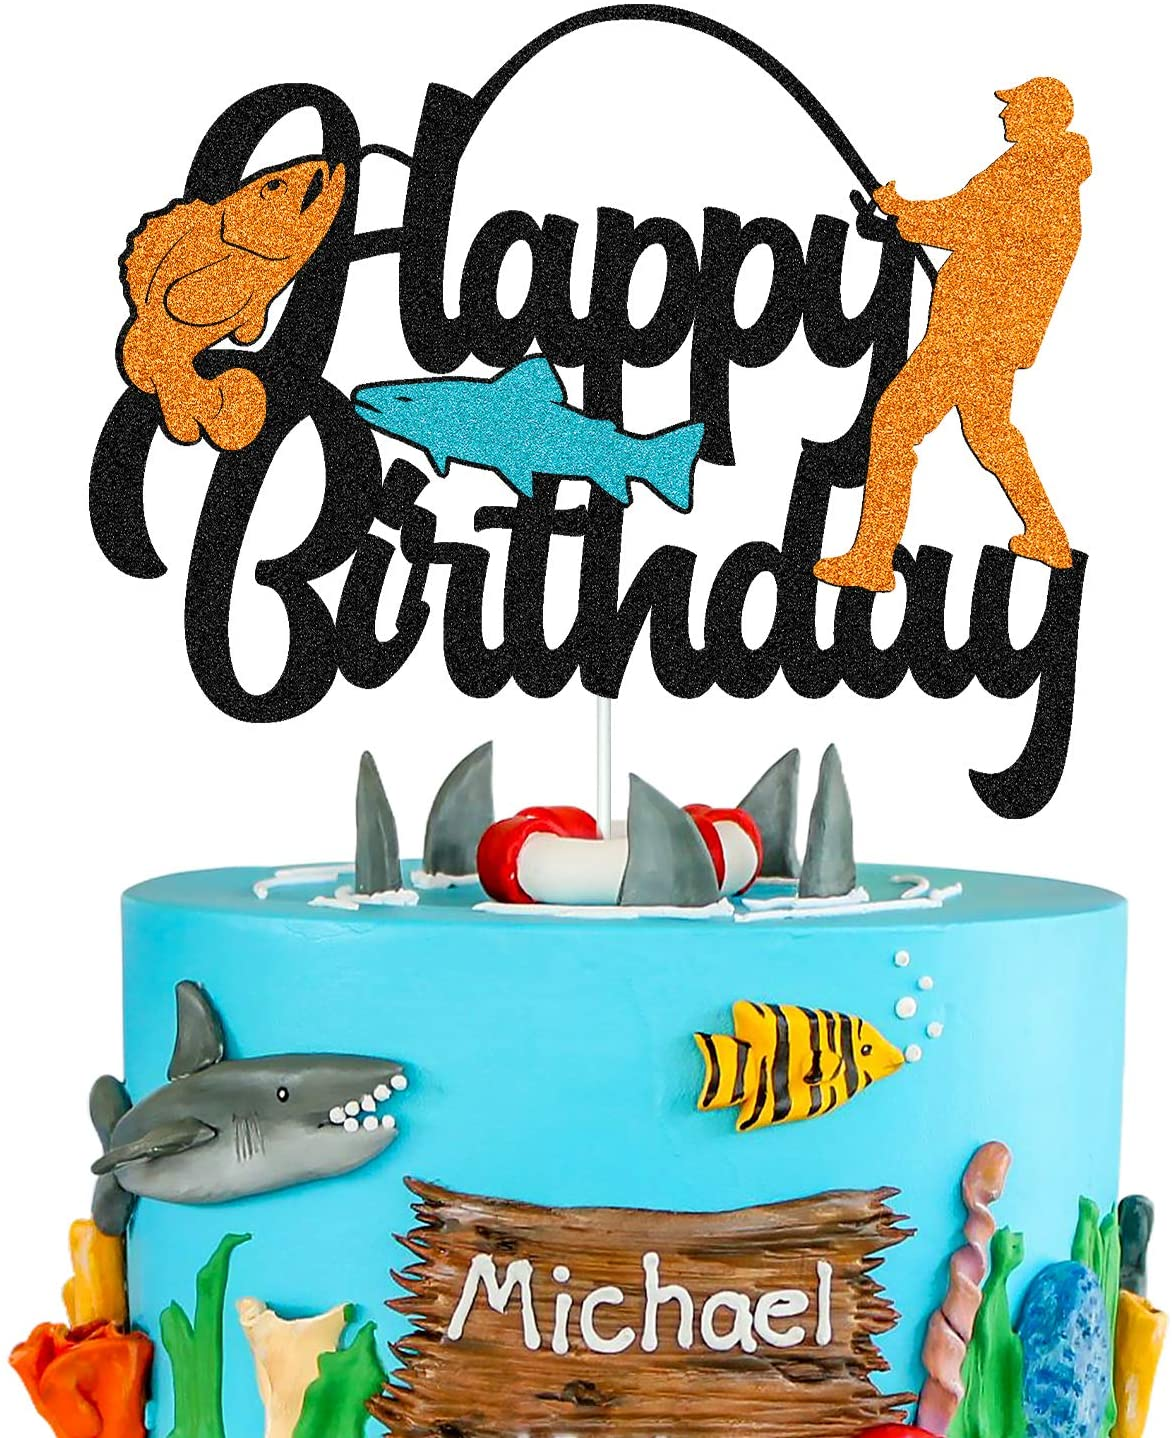 Fish Cake Topper Happy Birthday Sign Cake Decorations for Man Kids Boy Fisherman Gone Fishing Themed Birthday Party Supplies Black Glitter Decor